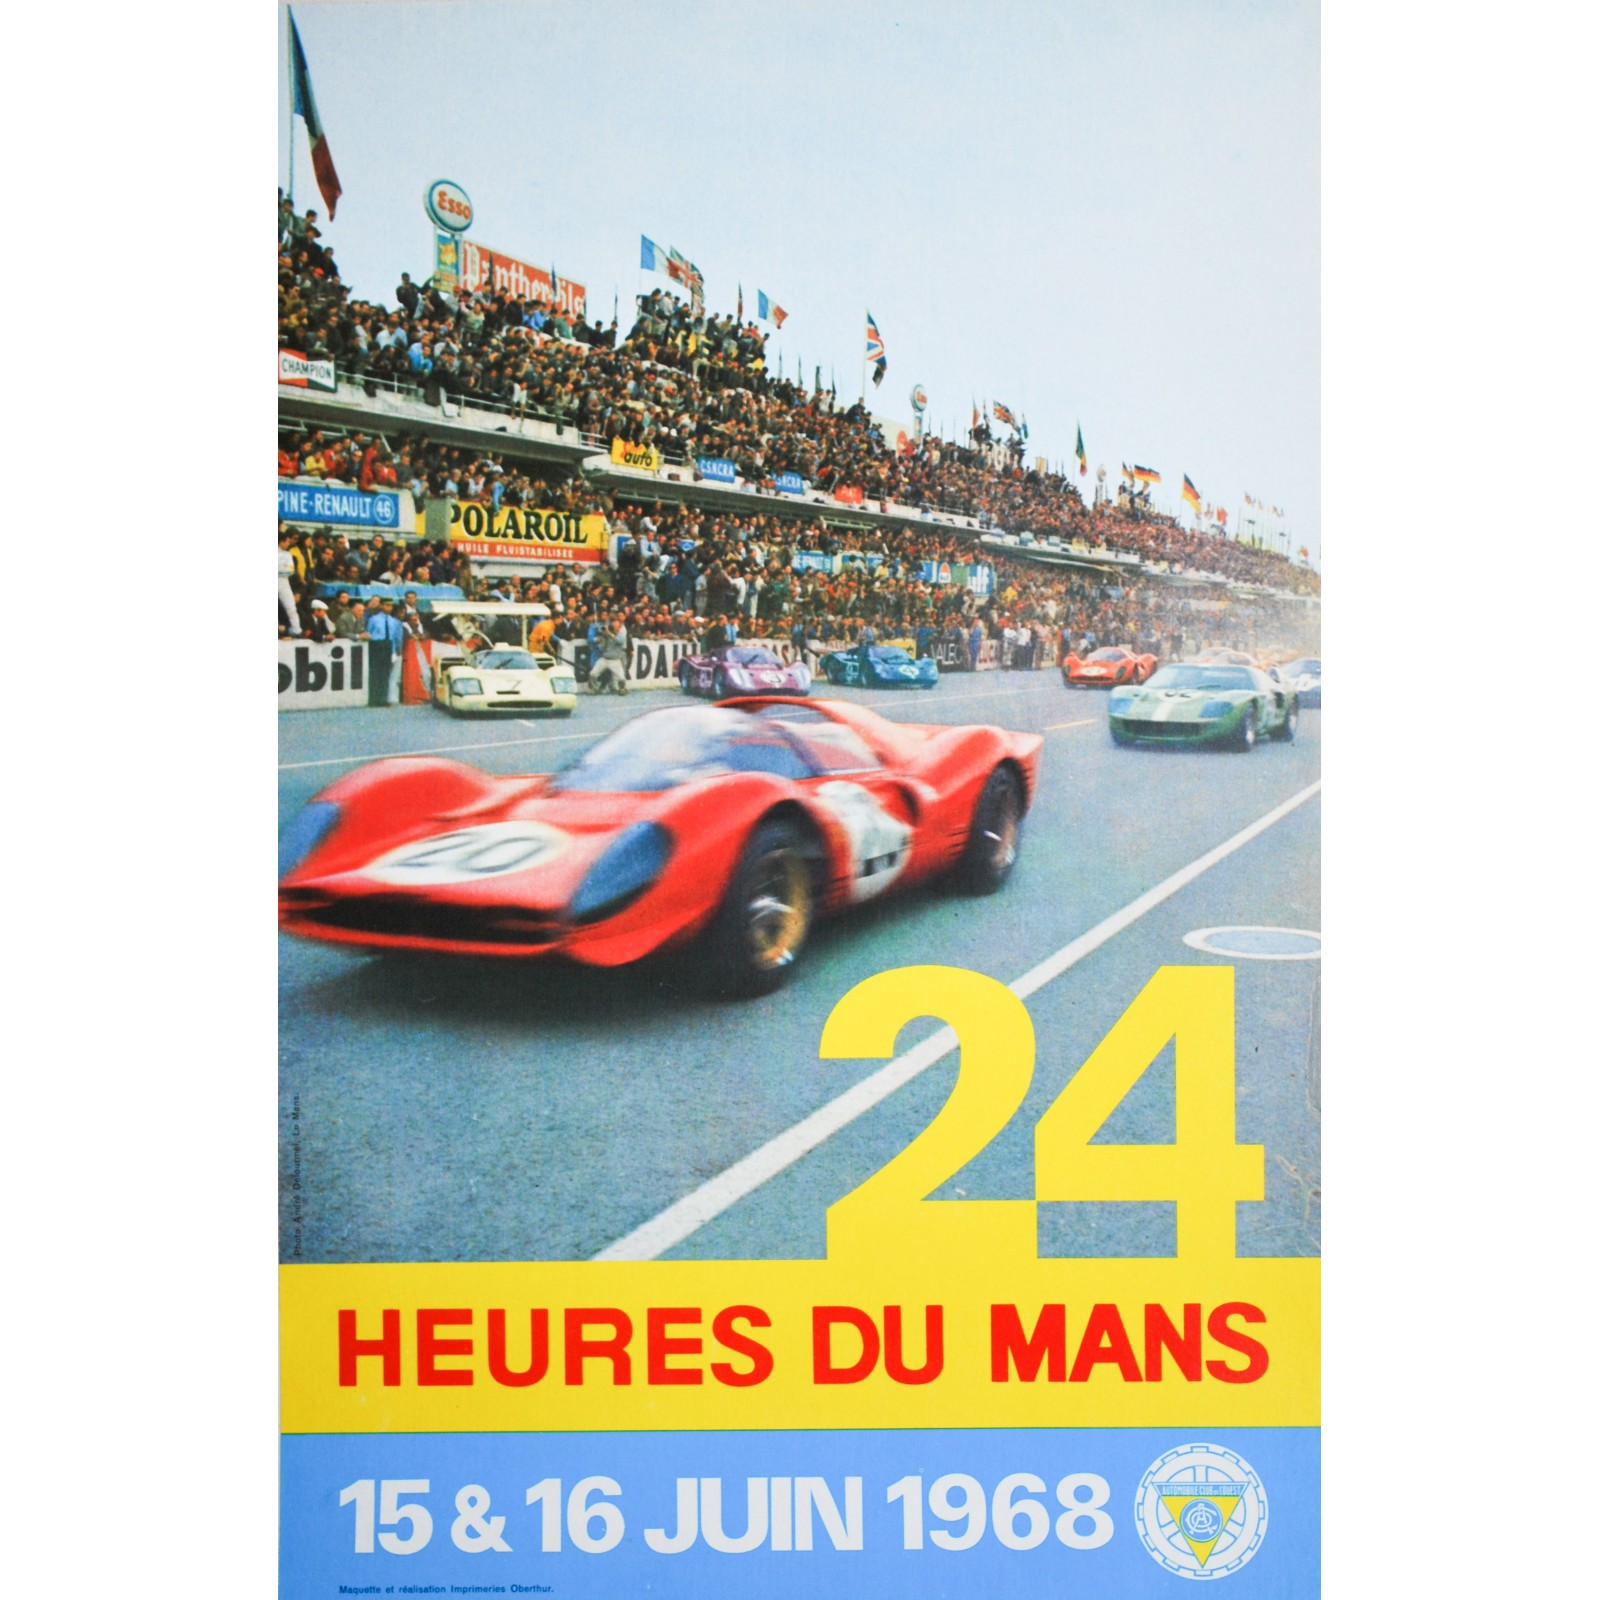 andr delourmel 24 heures du mans 1968 posters we love. Black Bedroom Furniture Sets. Home Design Ideas